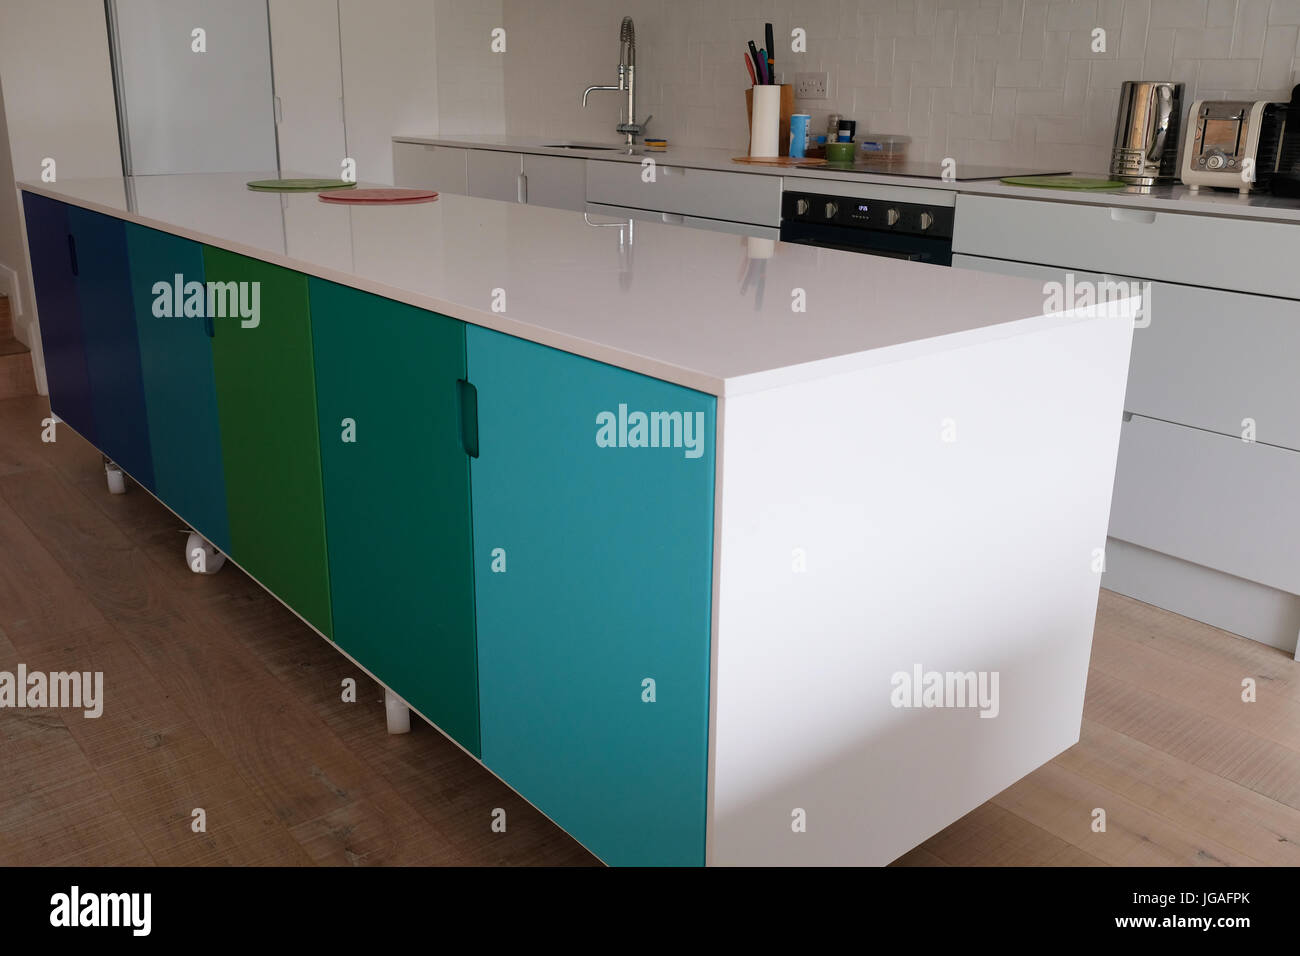 Ombre Painted Kitchen Cupboards Stock Photos & Ombre Painted Kitchen ...